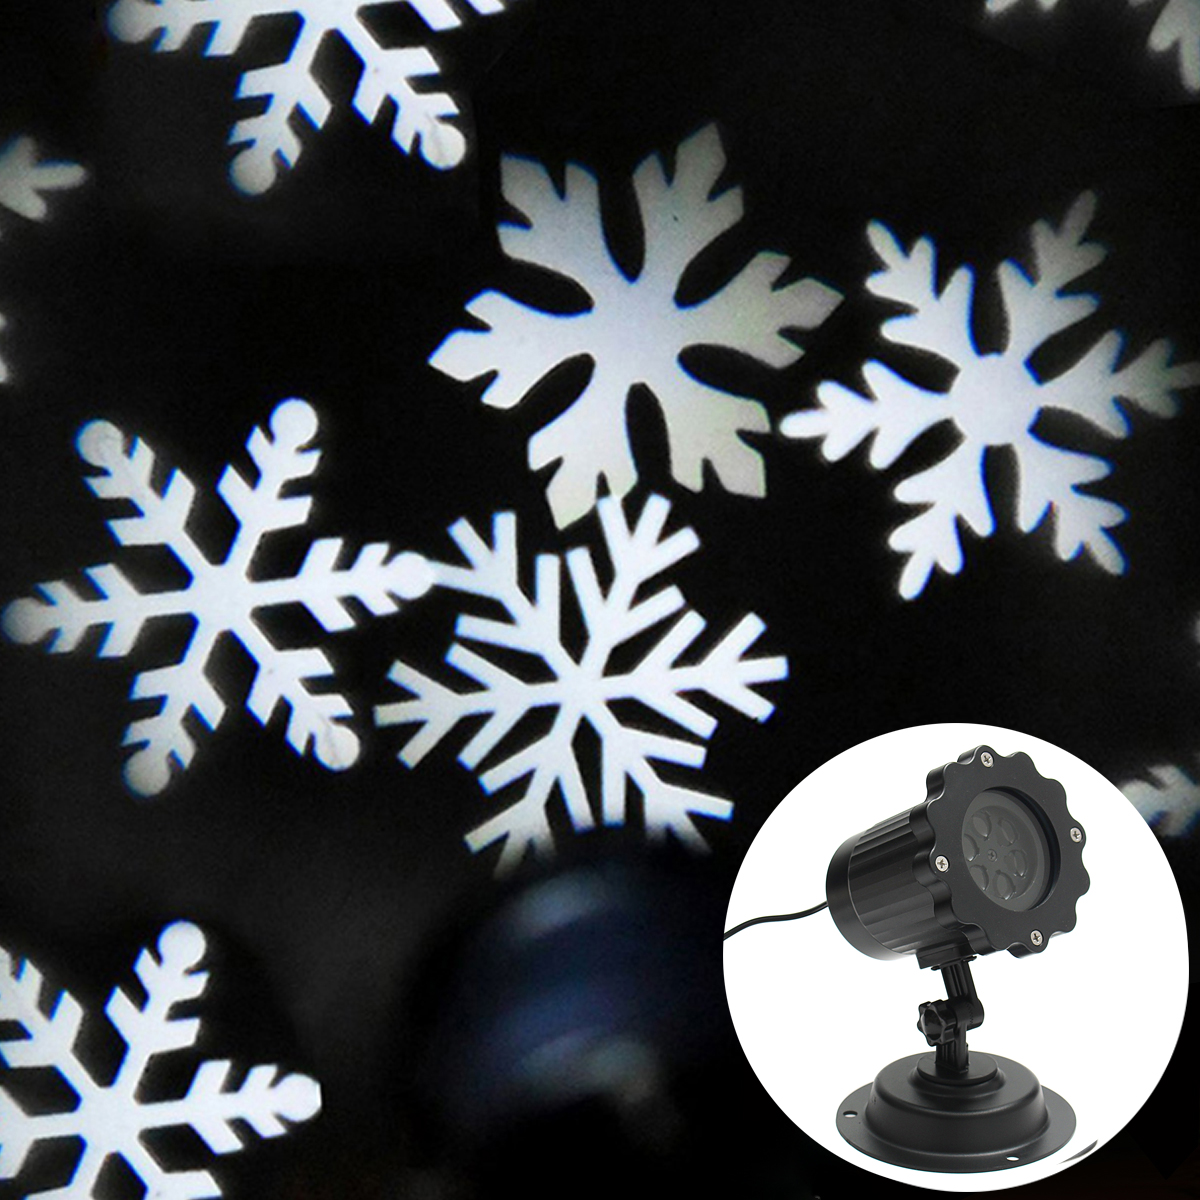 Christmas 100-240V Outdoor Moving Laser White Snowflakes Projector LED Light EU/US/AU/UK Waterproof 4 LED Lights Stage Lighting zjright waterproof moving laser projector lamps snowflakes led stage christmas party garden outdoor floor indoor decor lighting